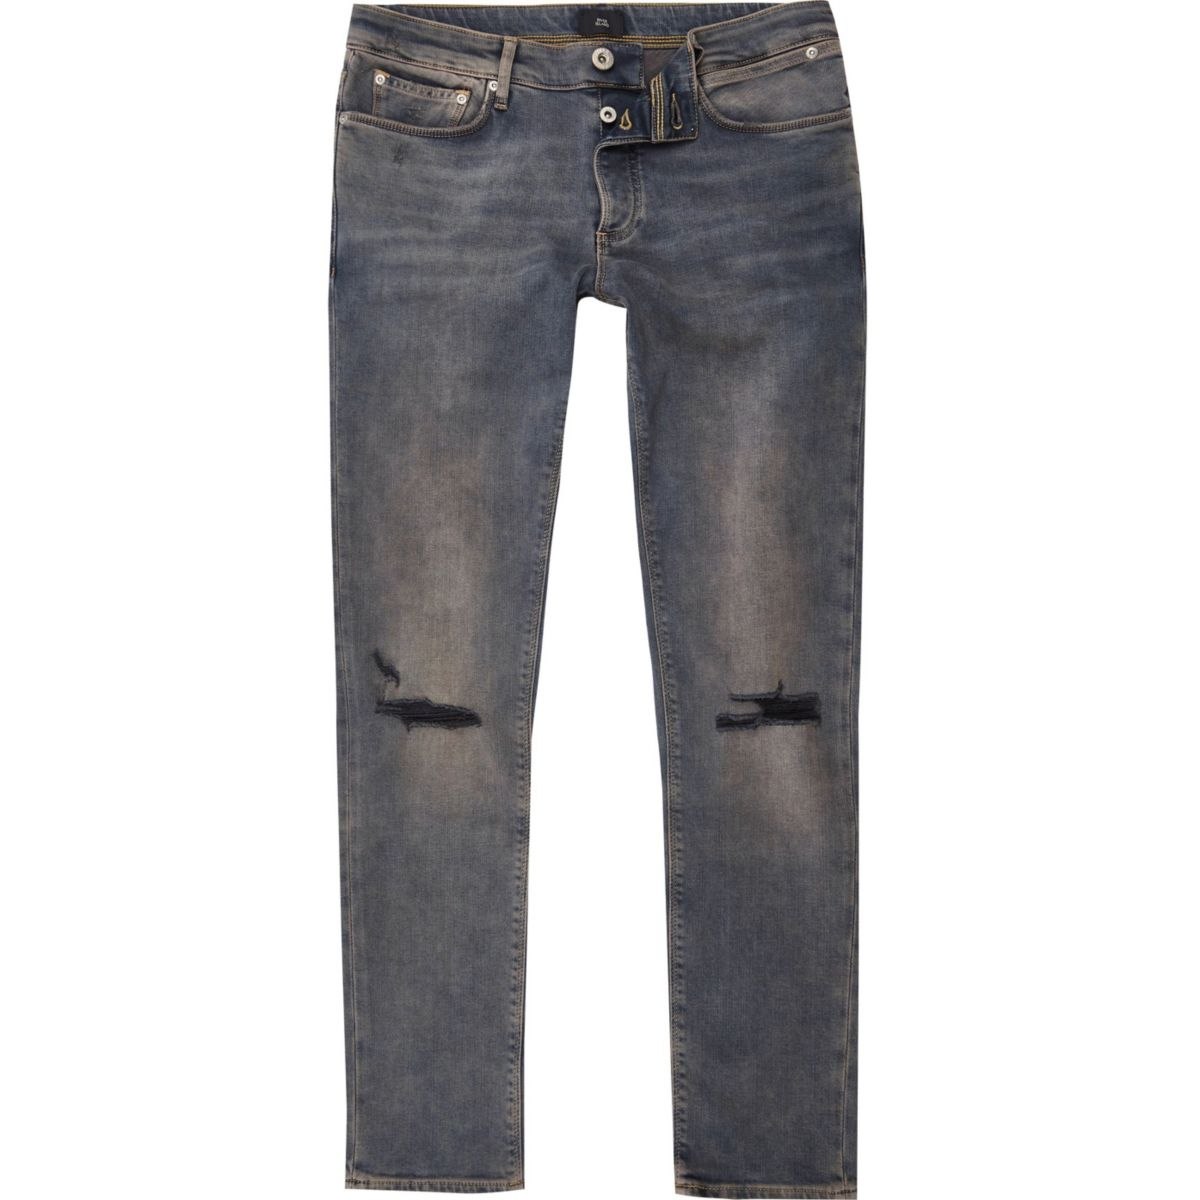 Washed dark blue ripped knee Sid skinny jeans